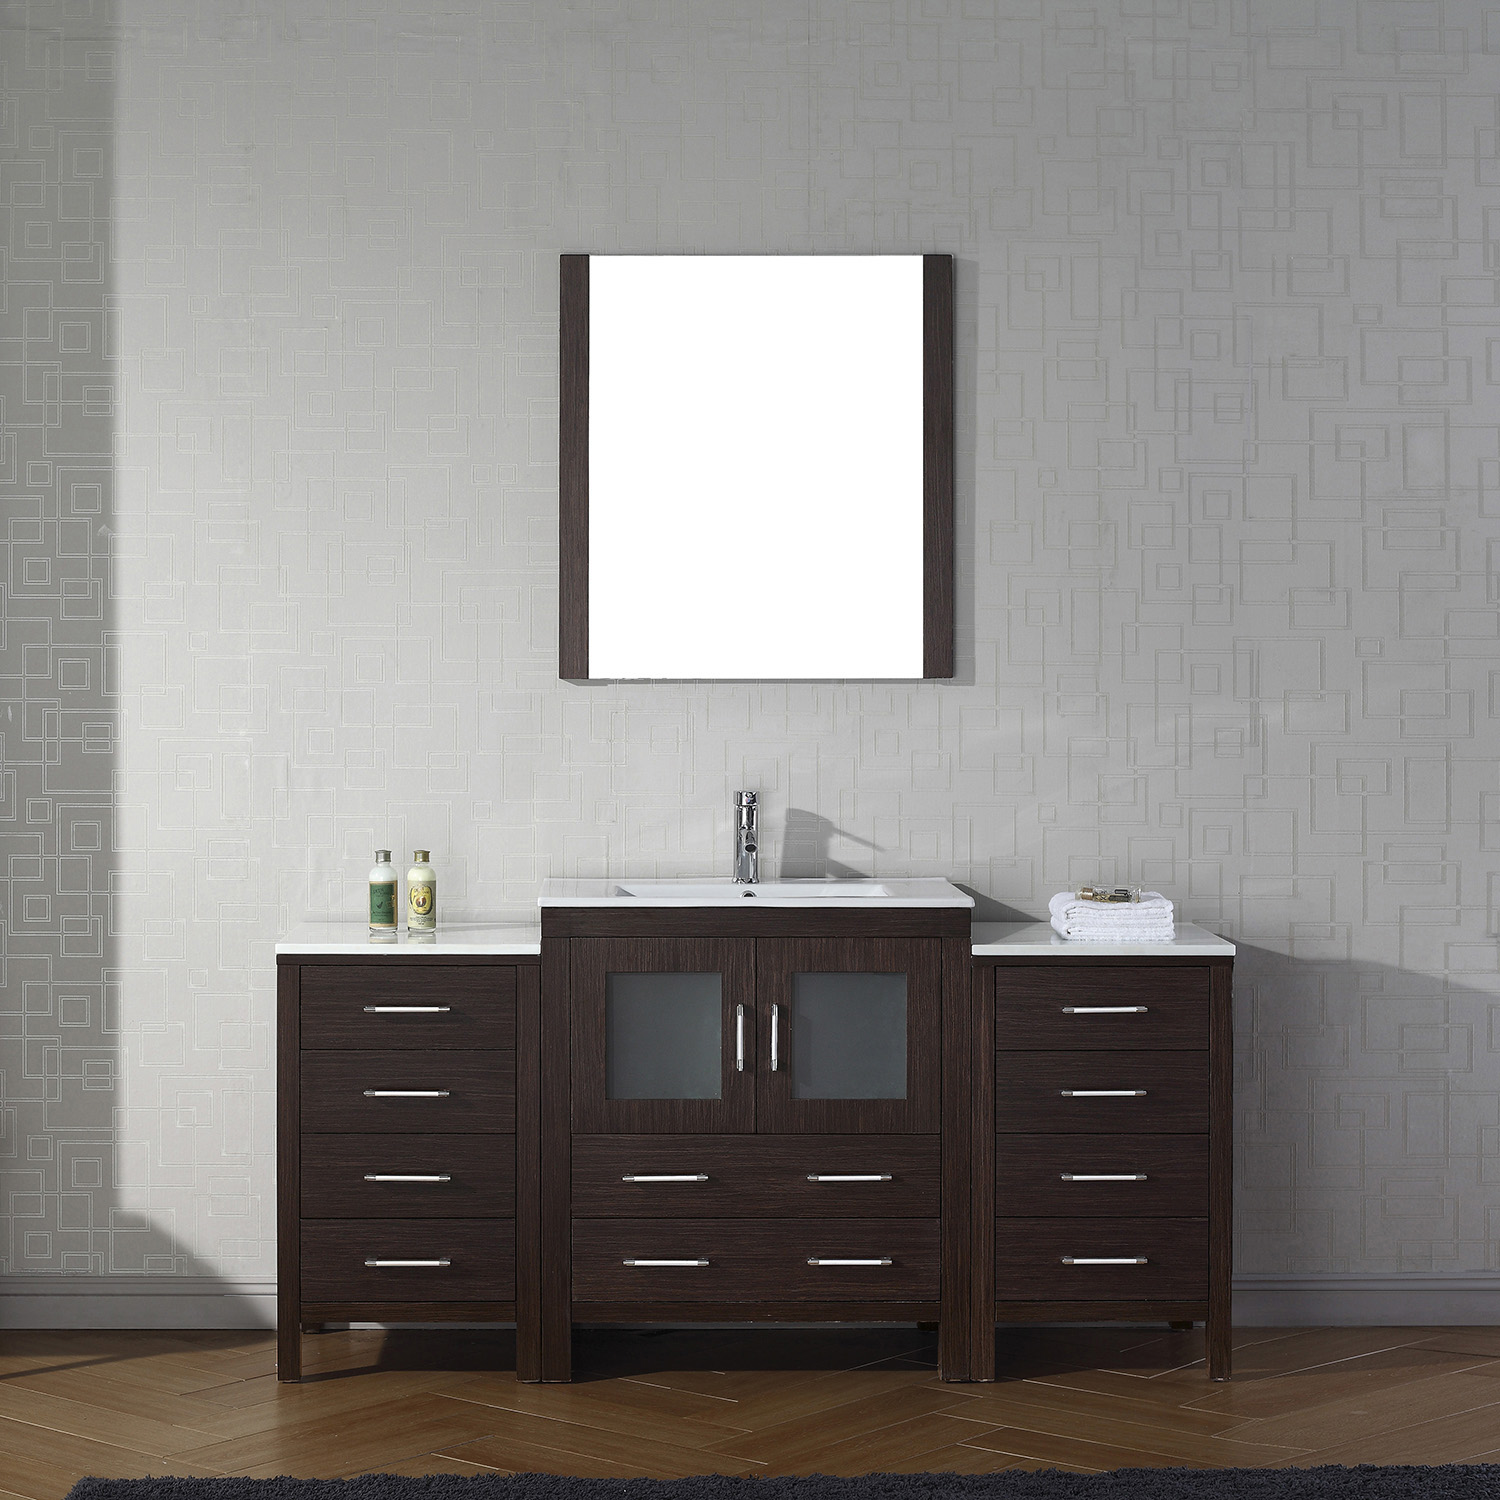 """66"""" Single Bath Vanity in Espresso with Slim White Ceramic Top and Square Sink with Polished Chrome Faucet and Mirror"""